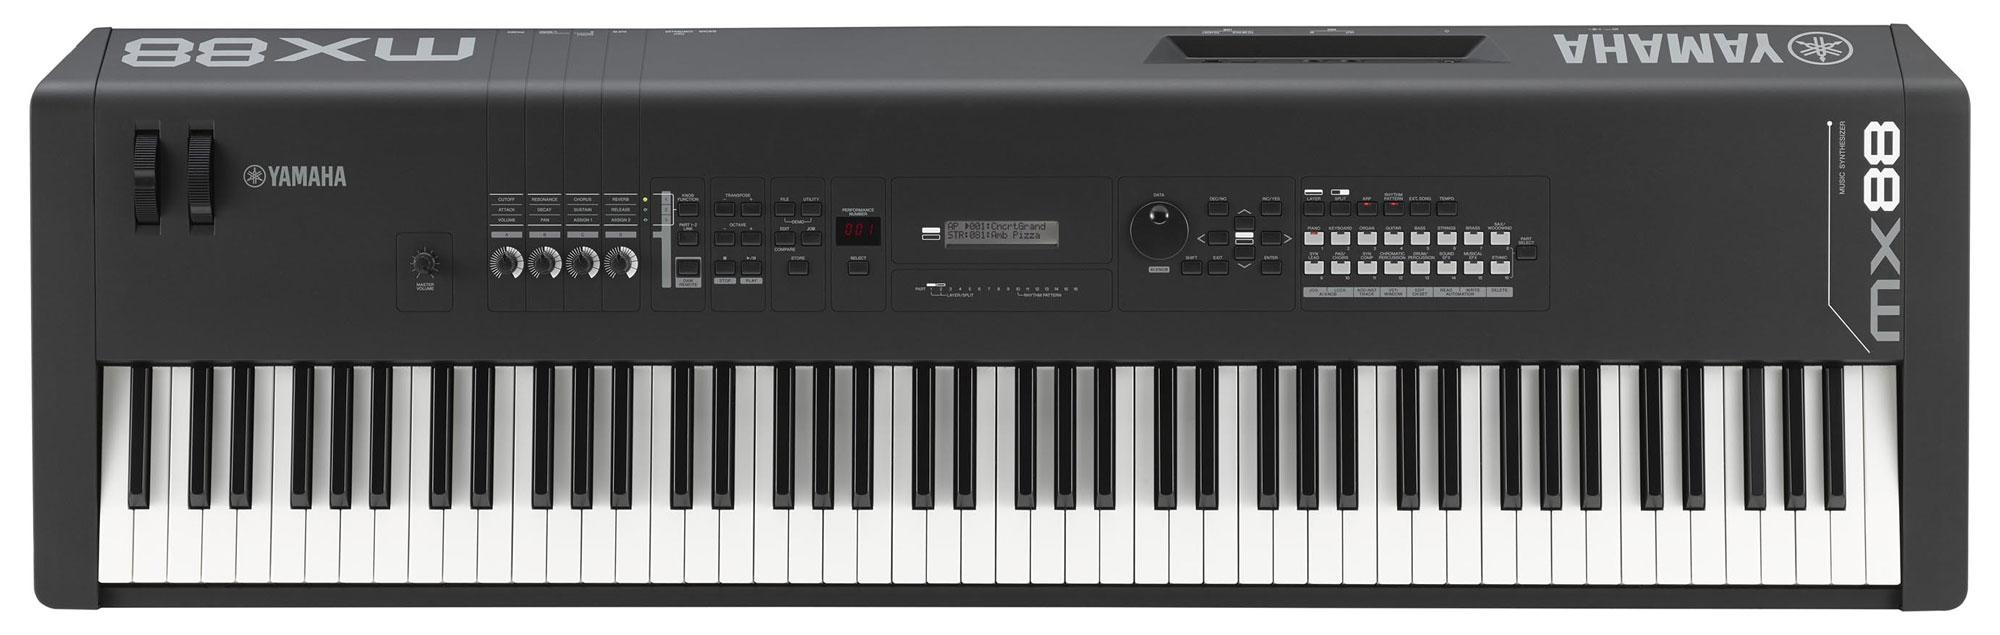 Yamaha MX88 Synthesizer schwarz